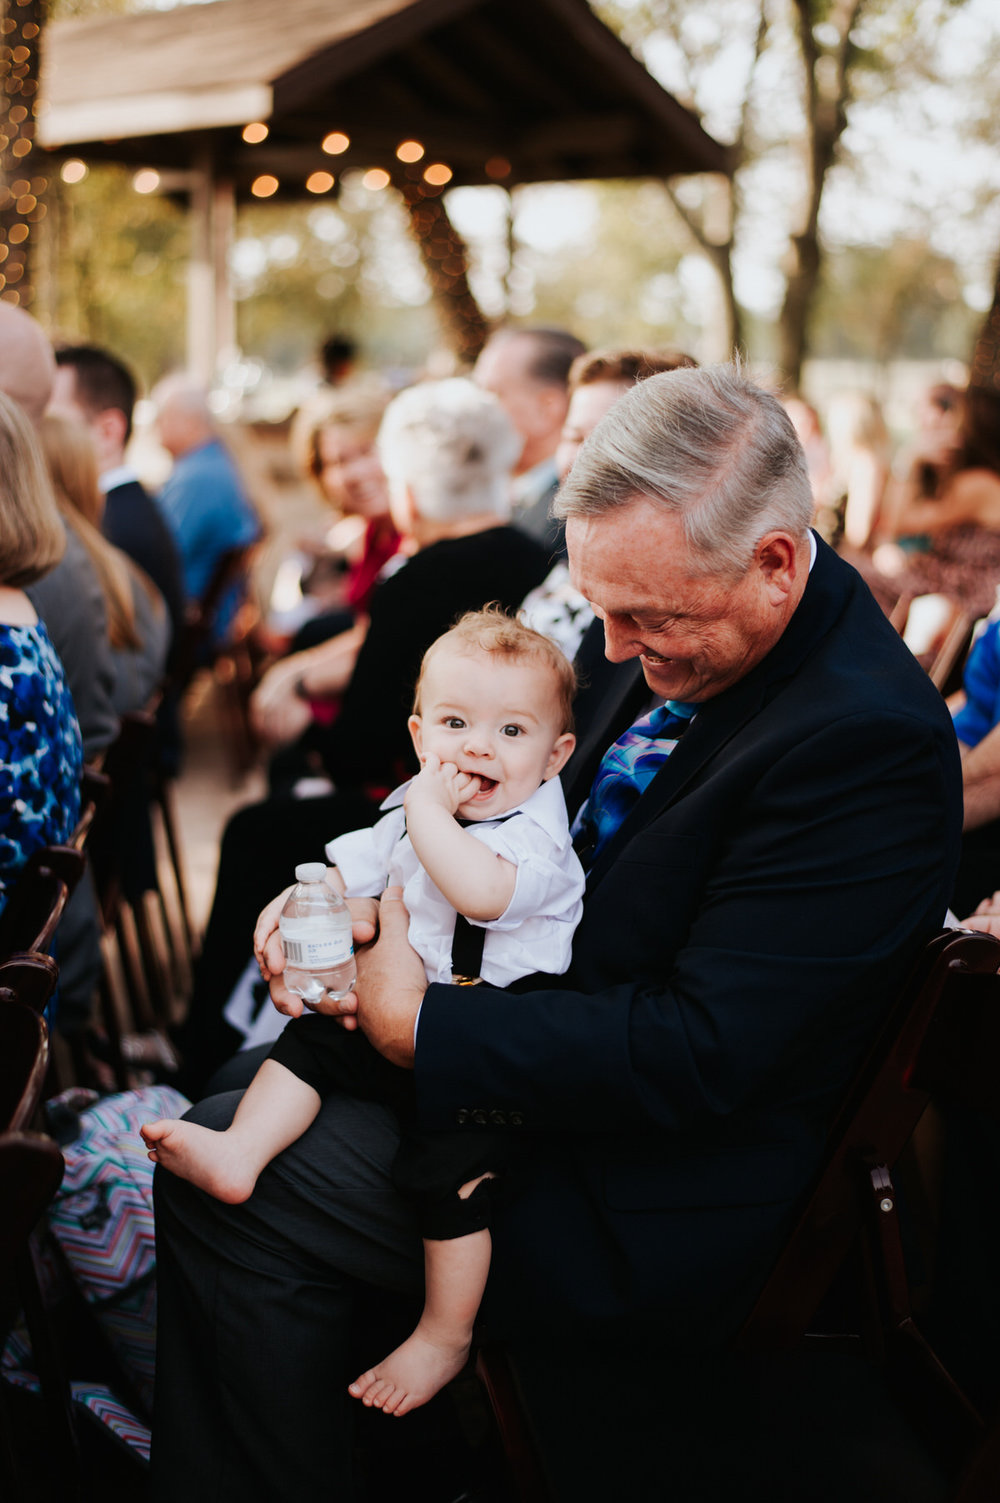 Grandpa and cute baby in wedding audience at Ranch Austin